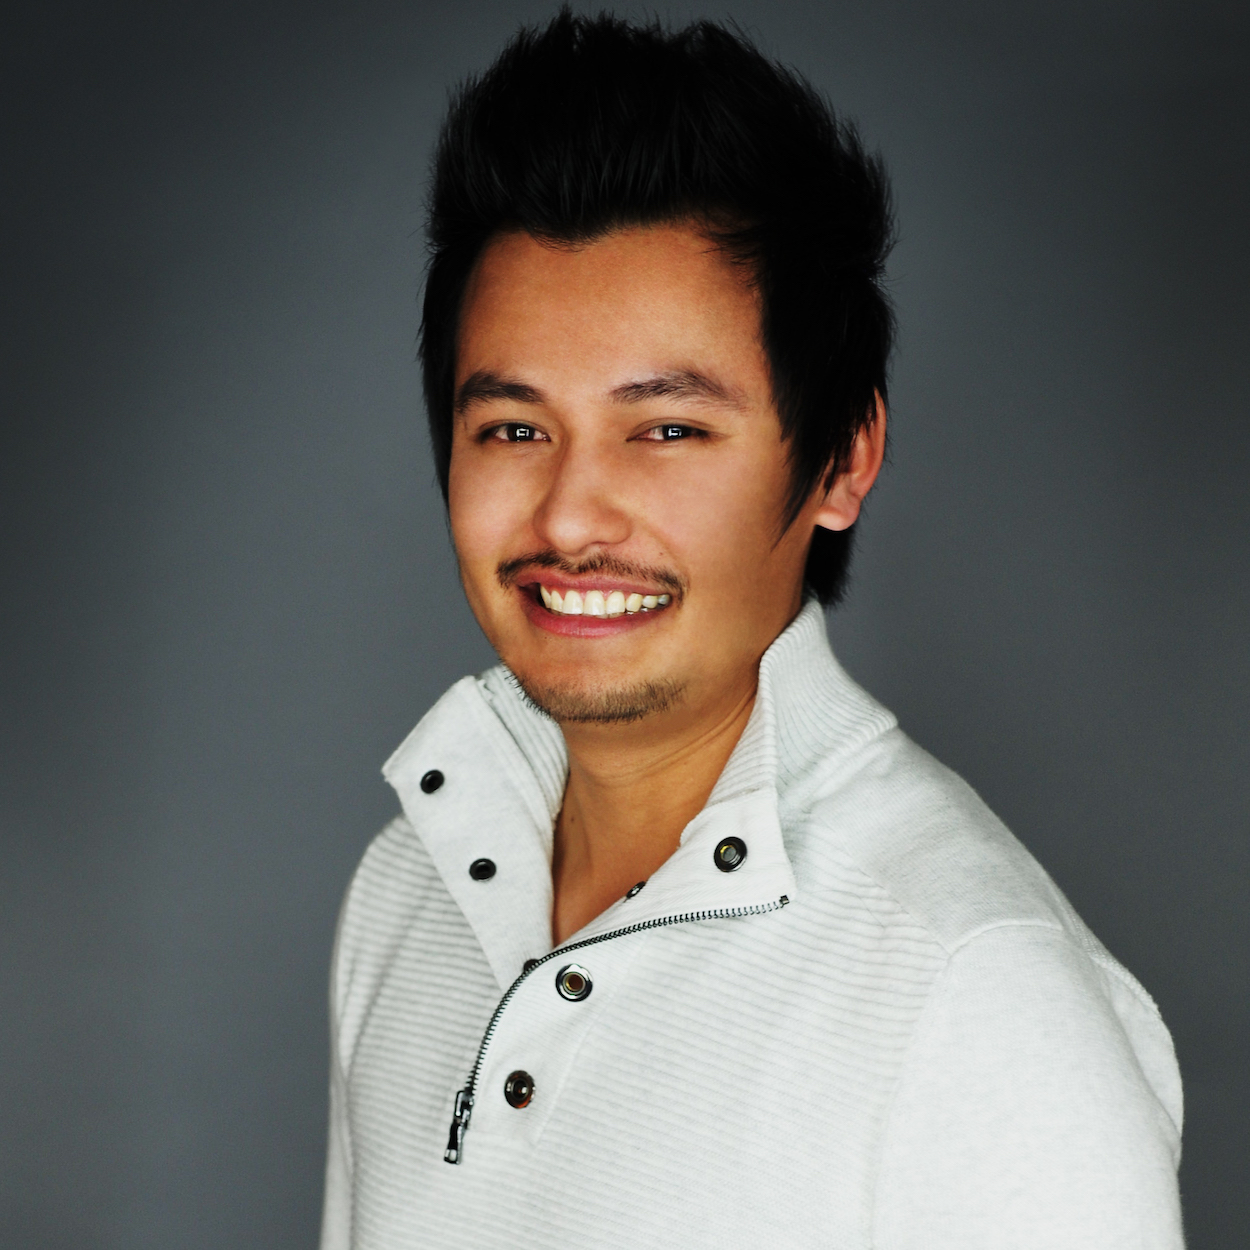 Learn a Little More About Live Picture Studios Founder/CEO Khoa Le!